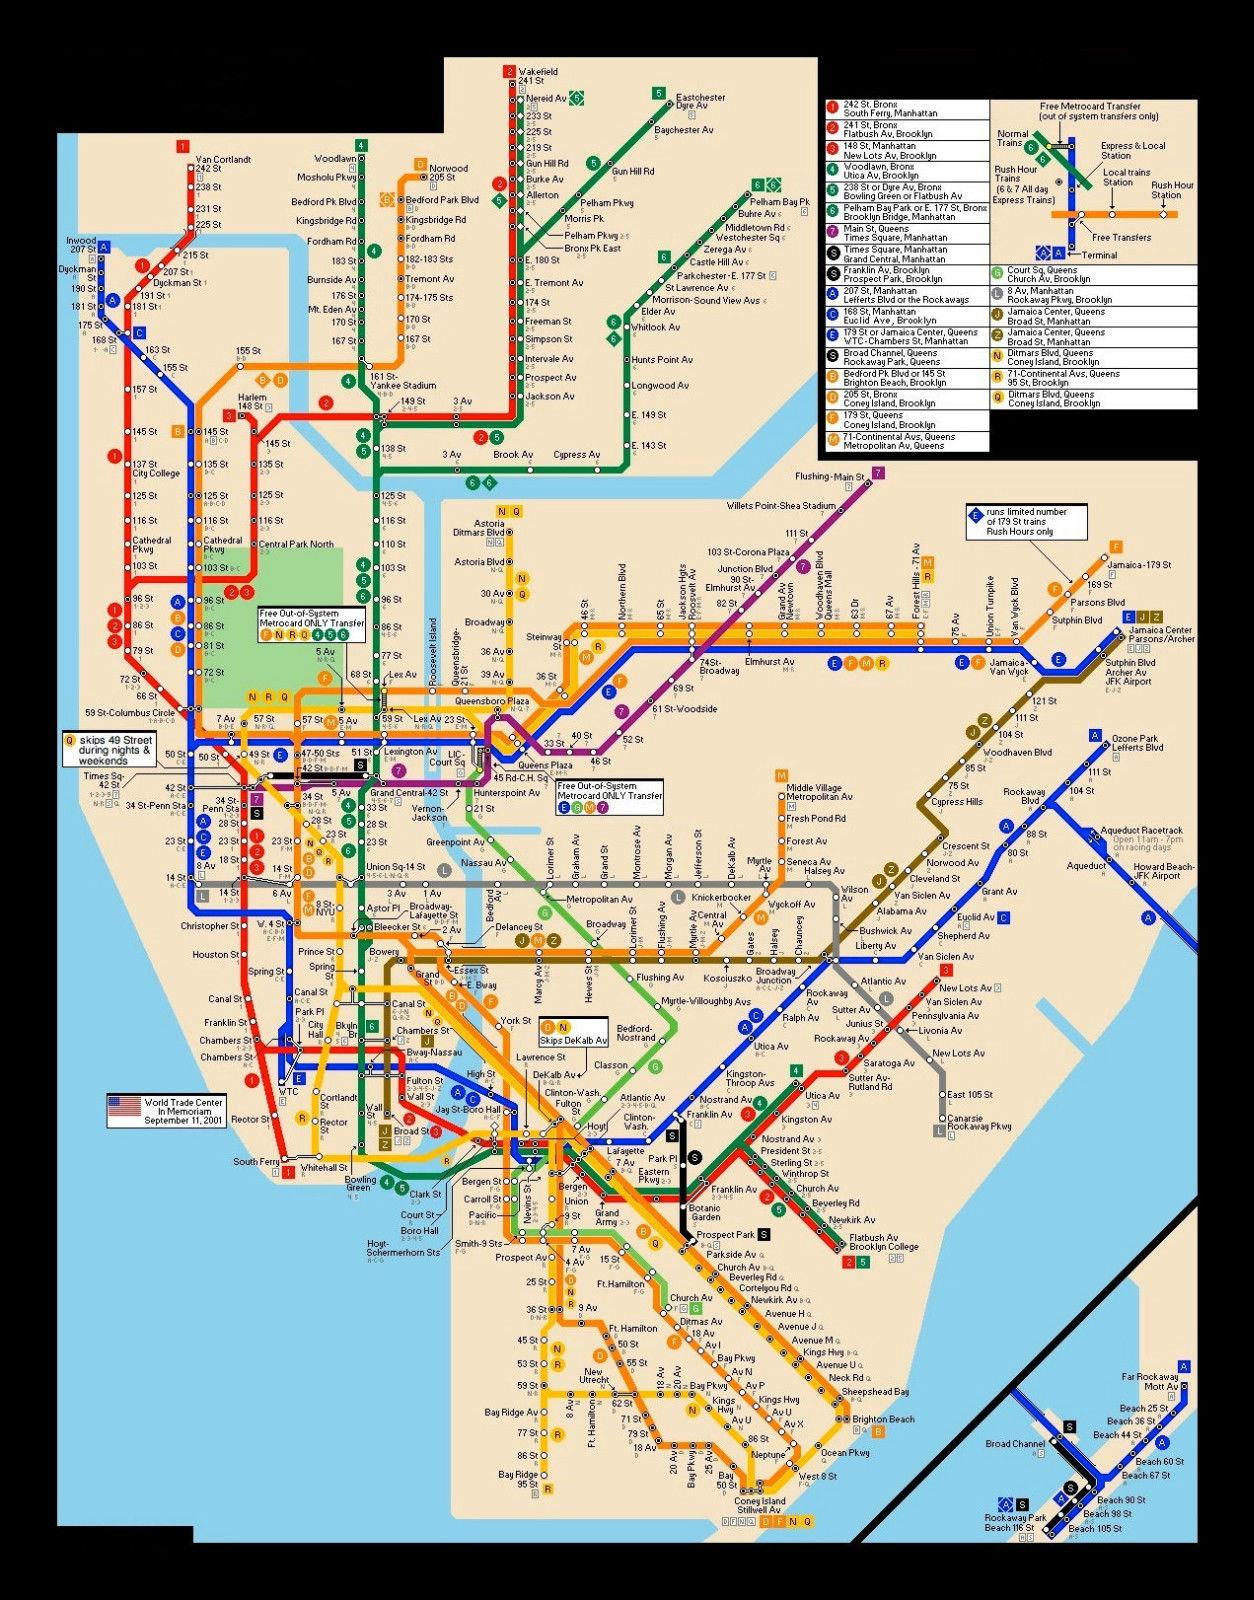 Ny York Subway Map.New York City Subway Map Art Silk Poster 24x36inch 24x43inch 0587